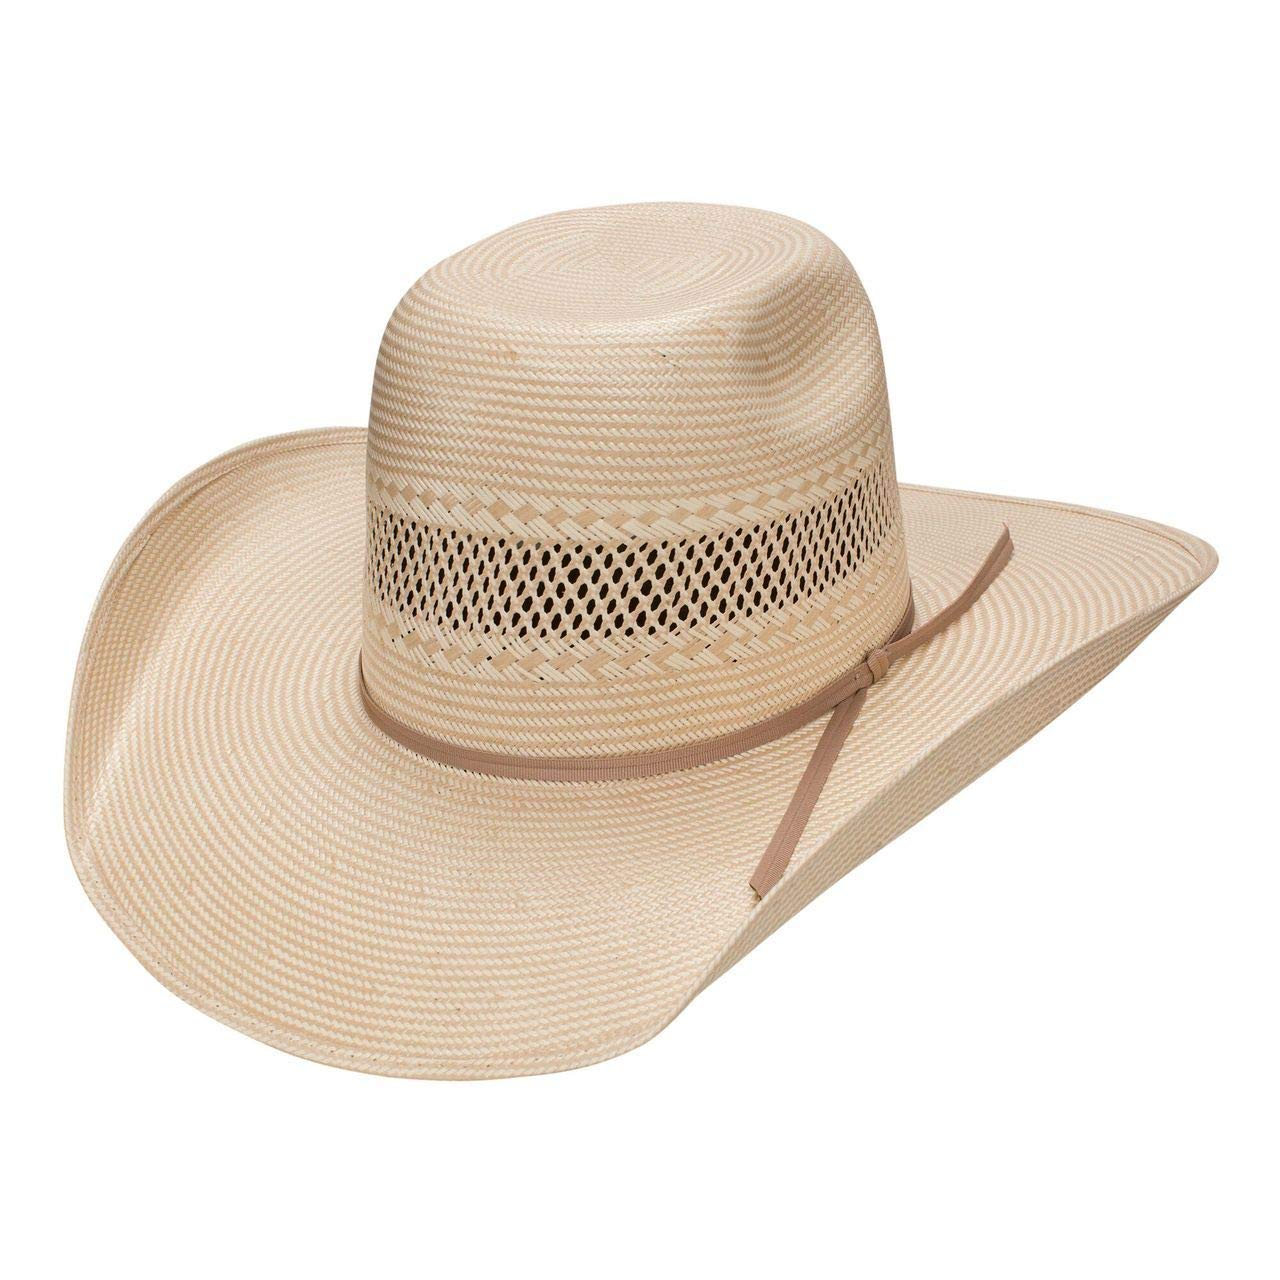 Resistol Cullman Youth Childs Straw Cowboy Hat One Size